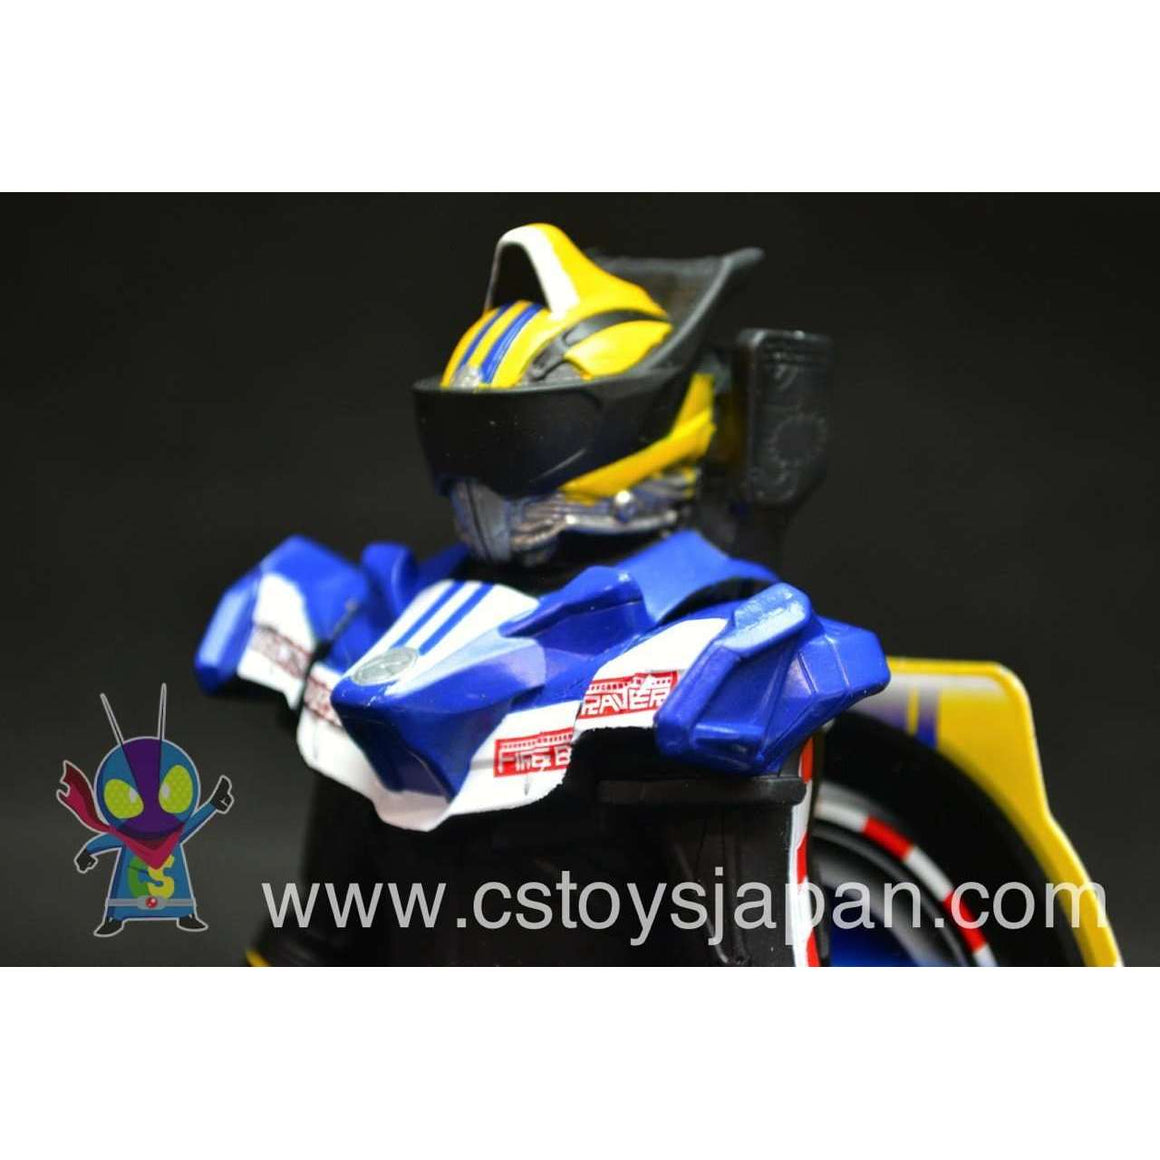 CSTOYS INTERNATIONAL:Kamen Rider Drive RHS 08 Type Formula